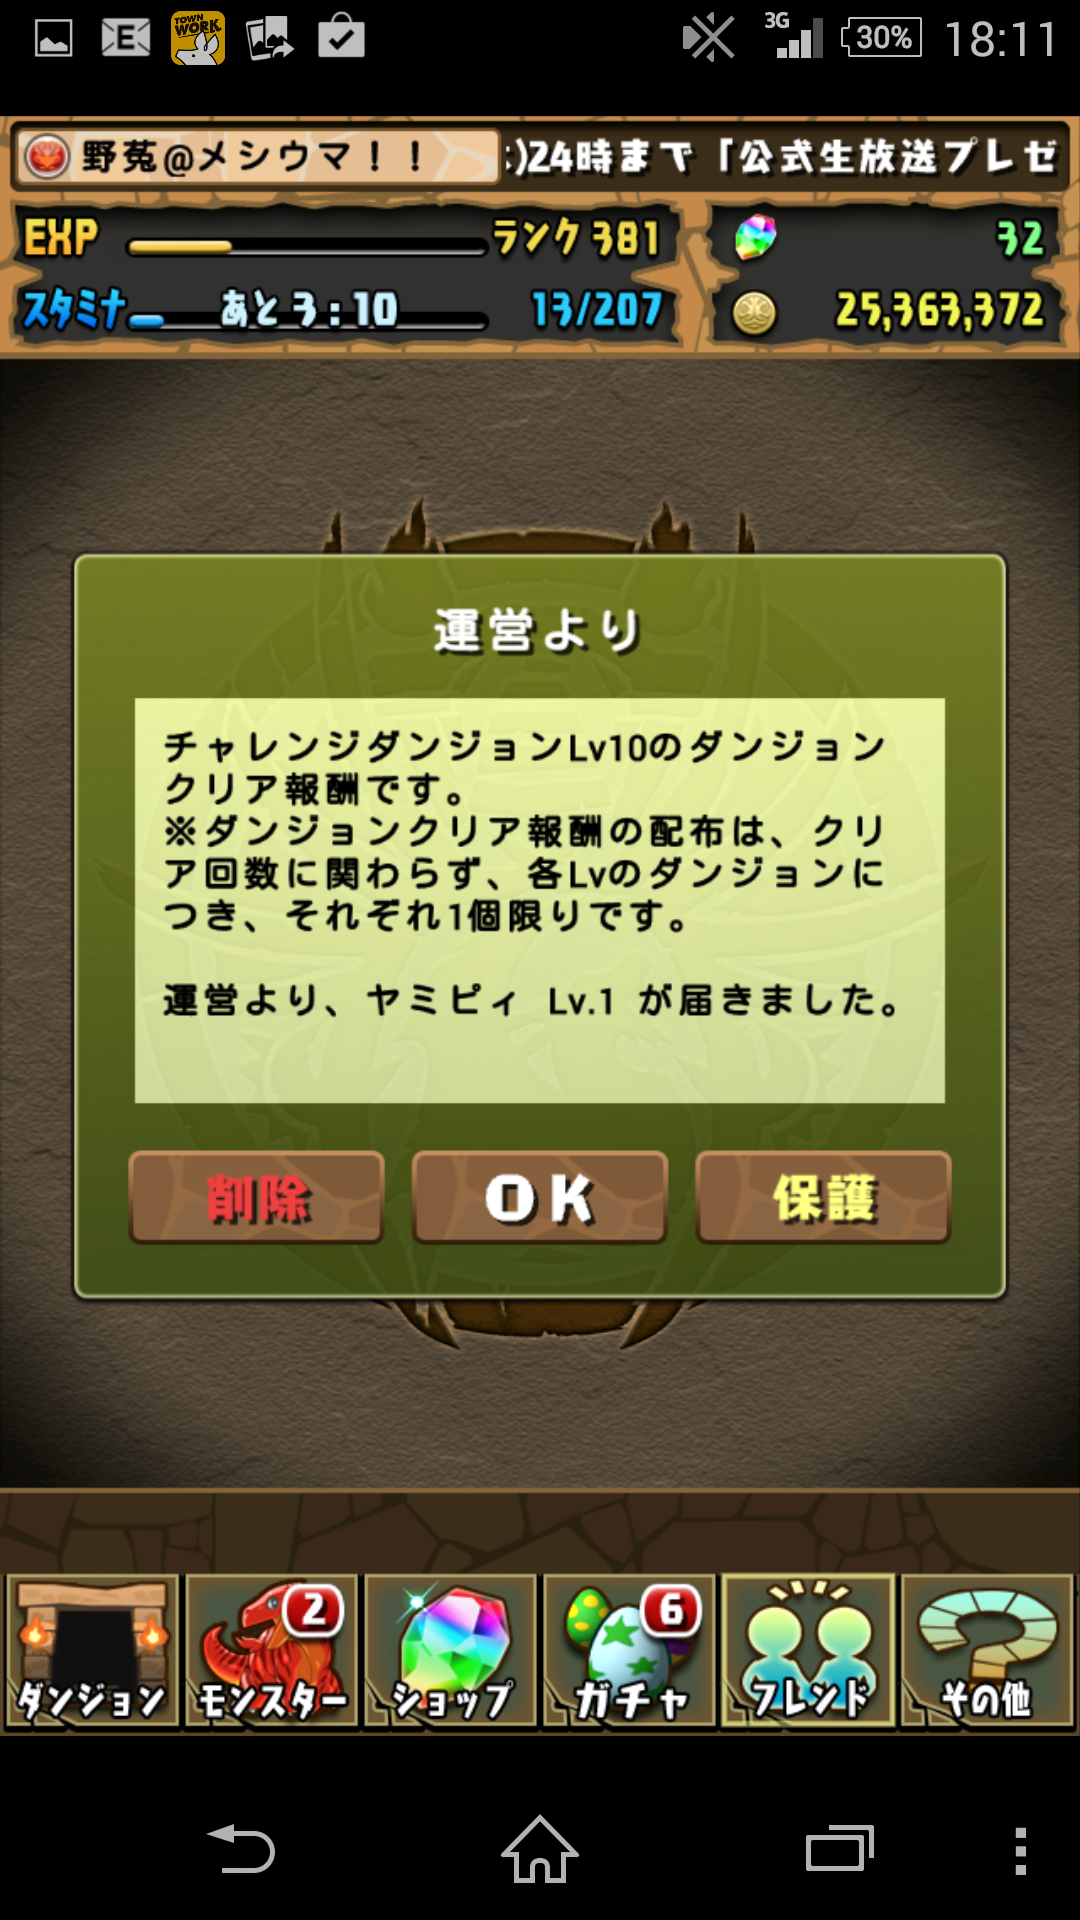 Screenshot_2014-10-13-18-11-26.png